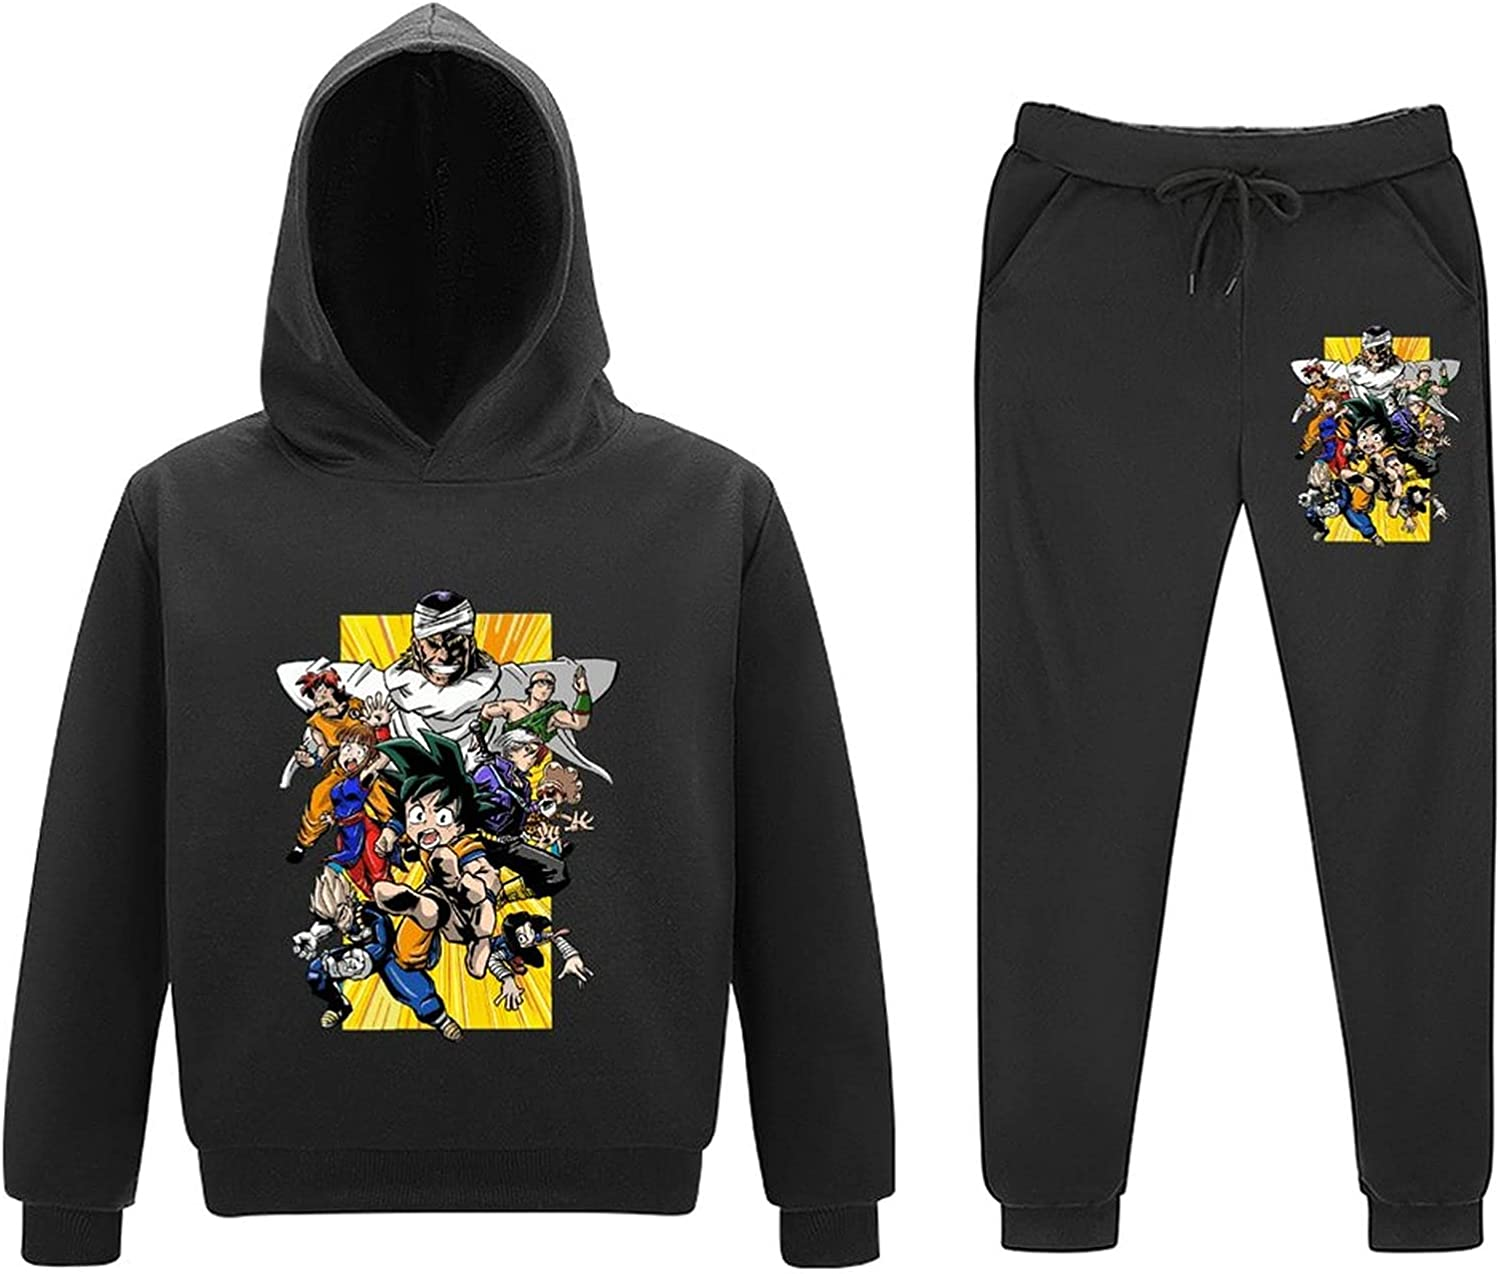 5-11Y San Antonio Mall My Hero Aca-demia Kids Sweatsuits Outfits Piece Toddler Popularity 2